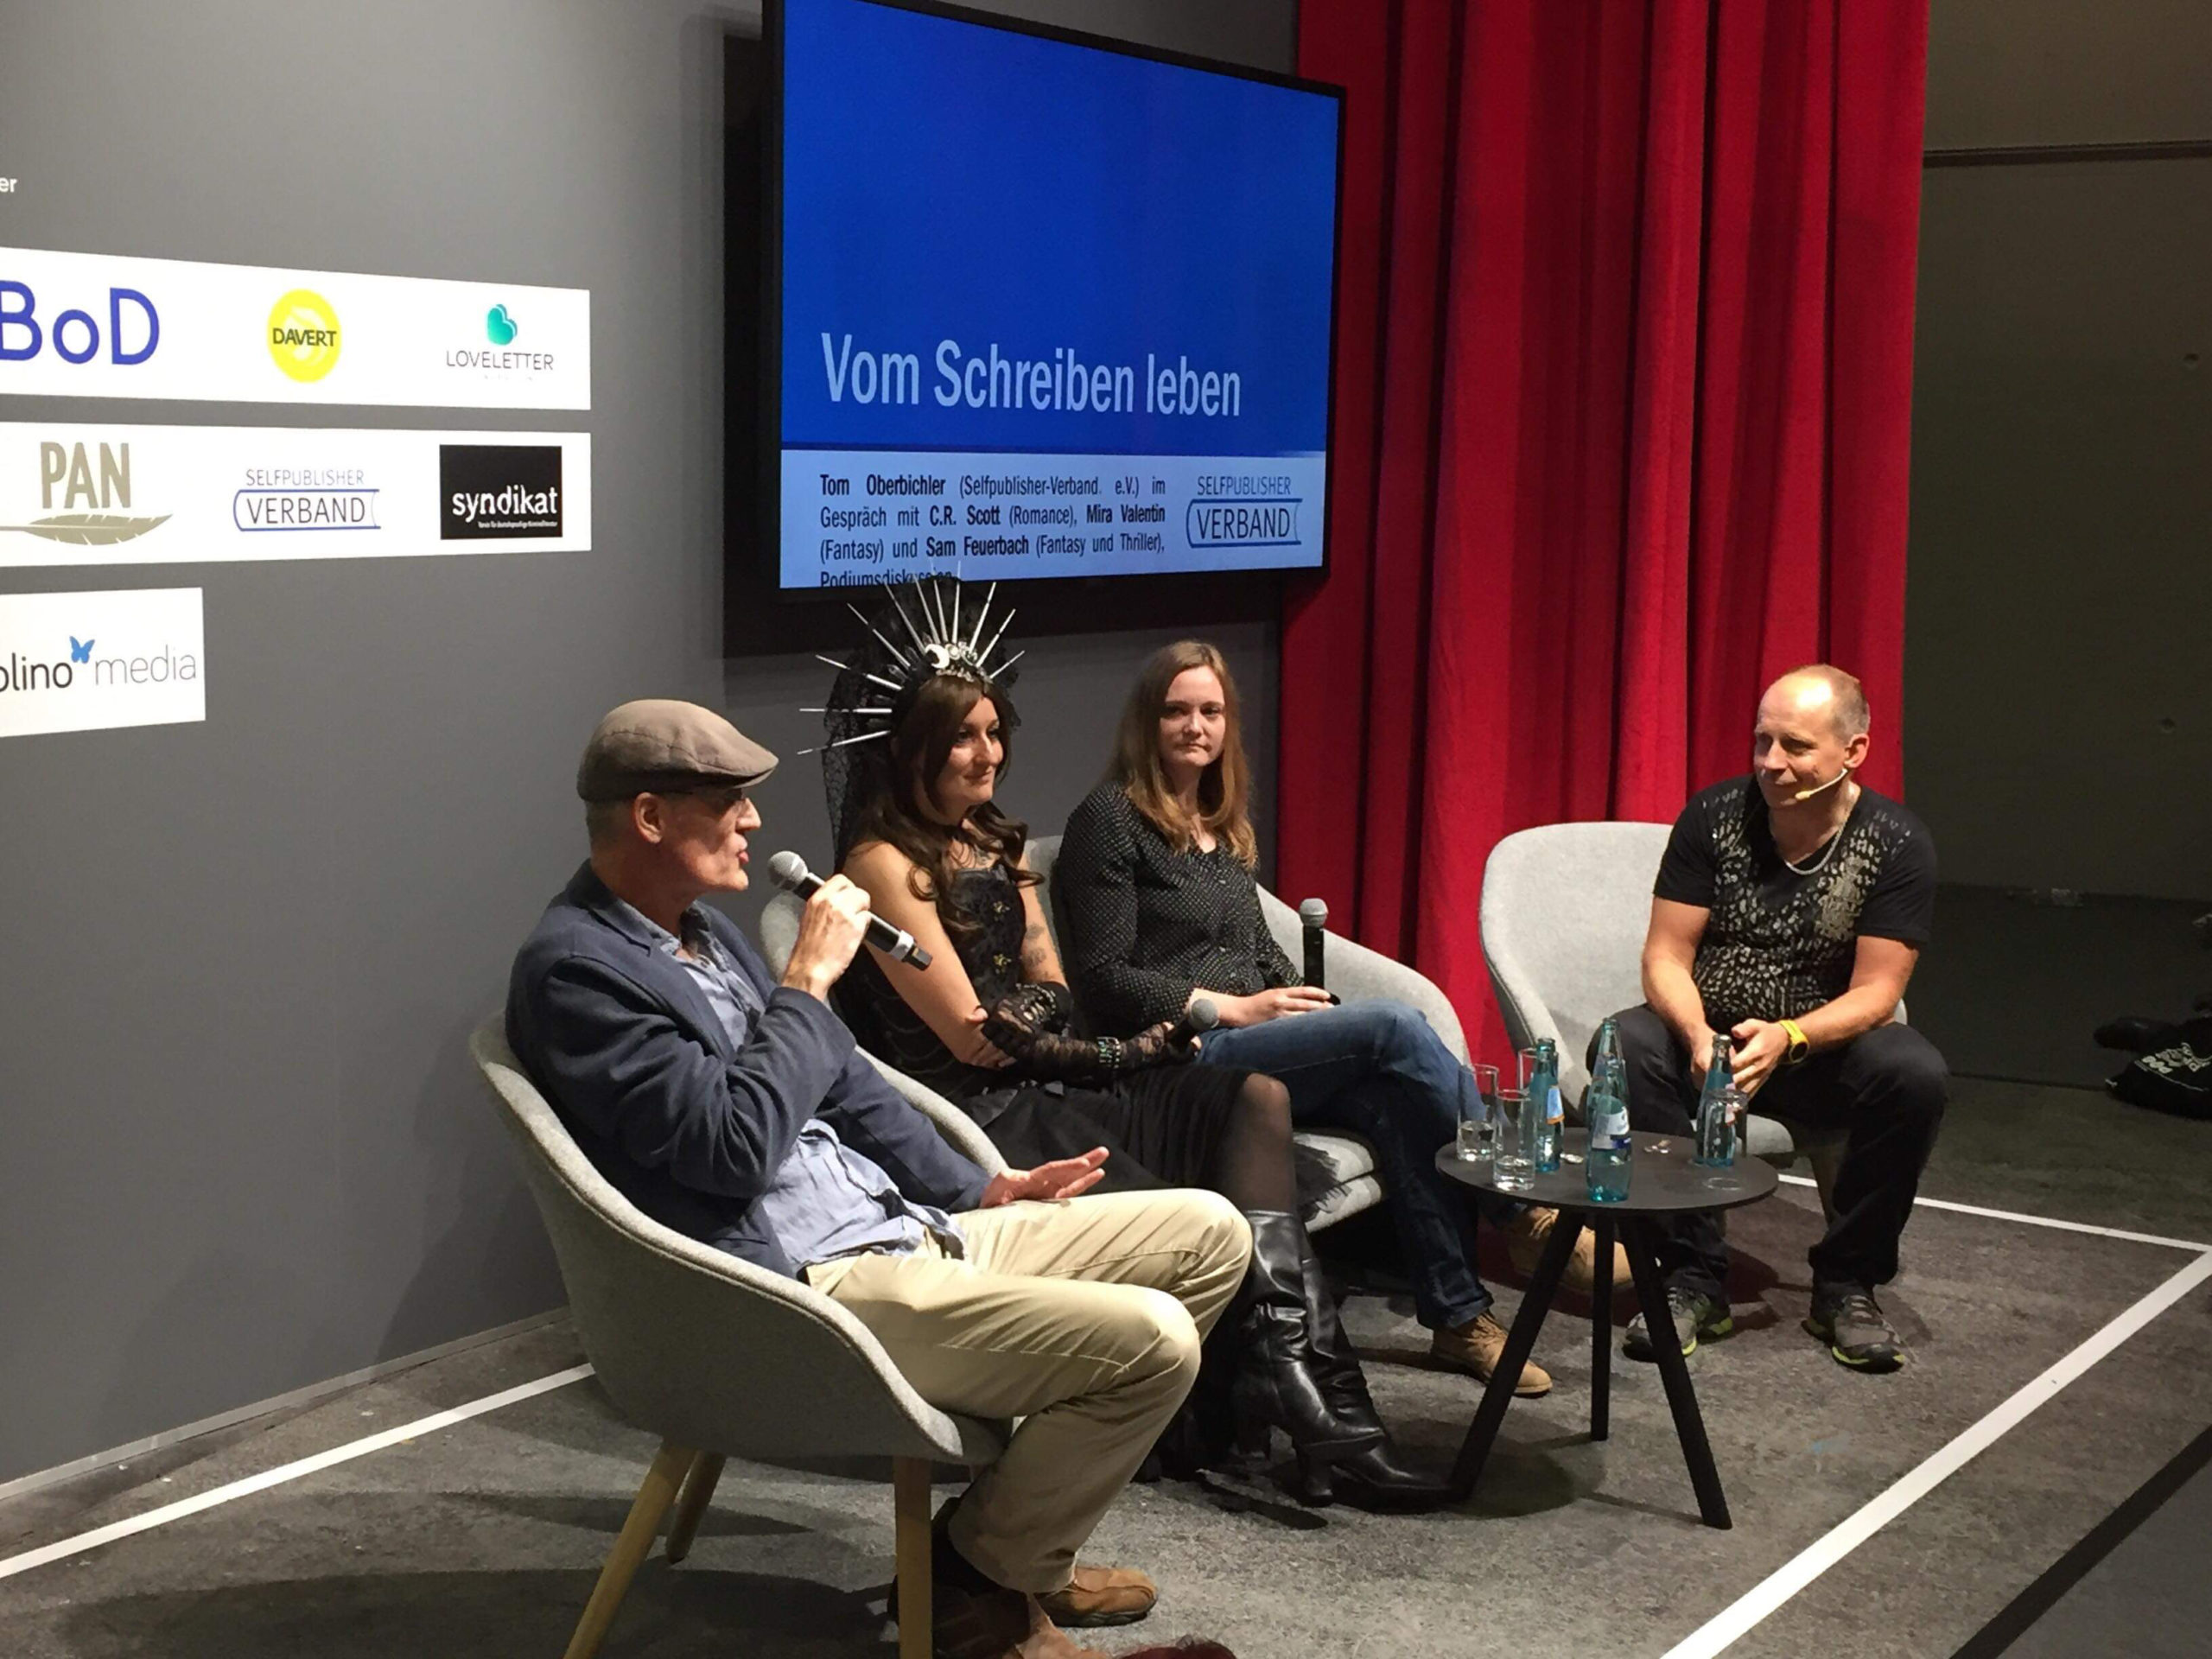 Podiumsdiskussin Selfpublisher-Verband